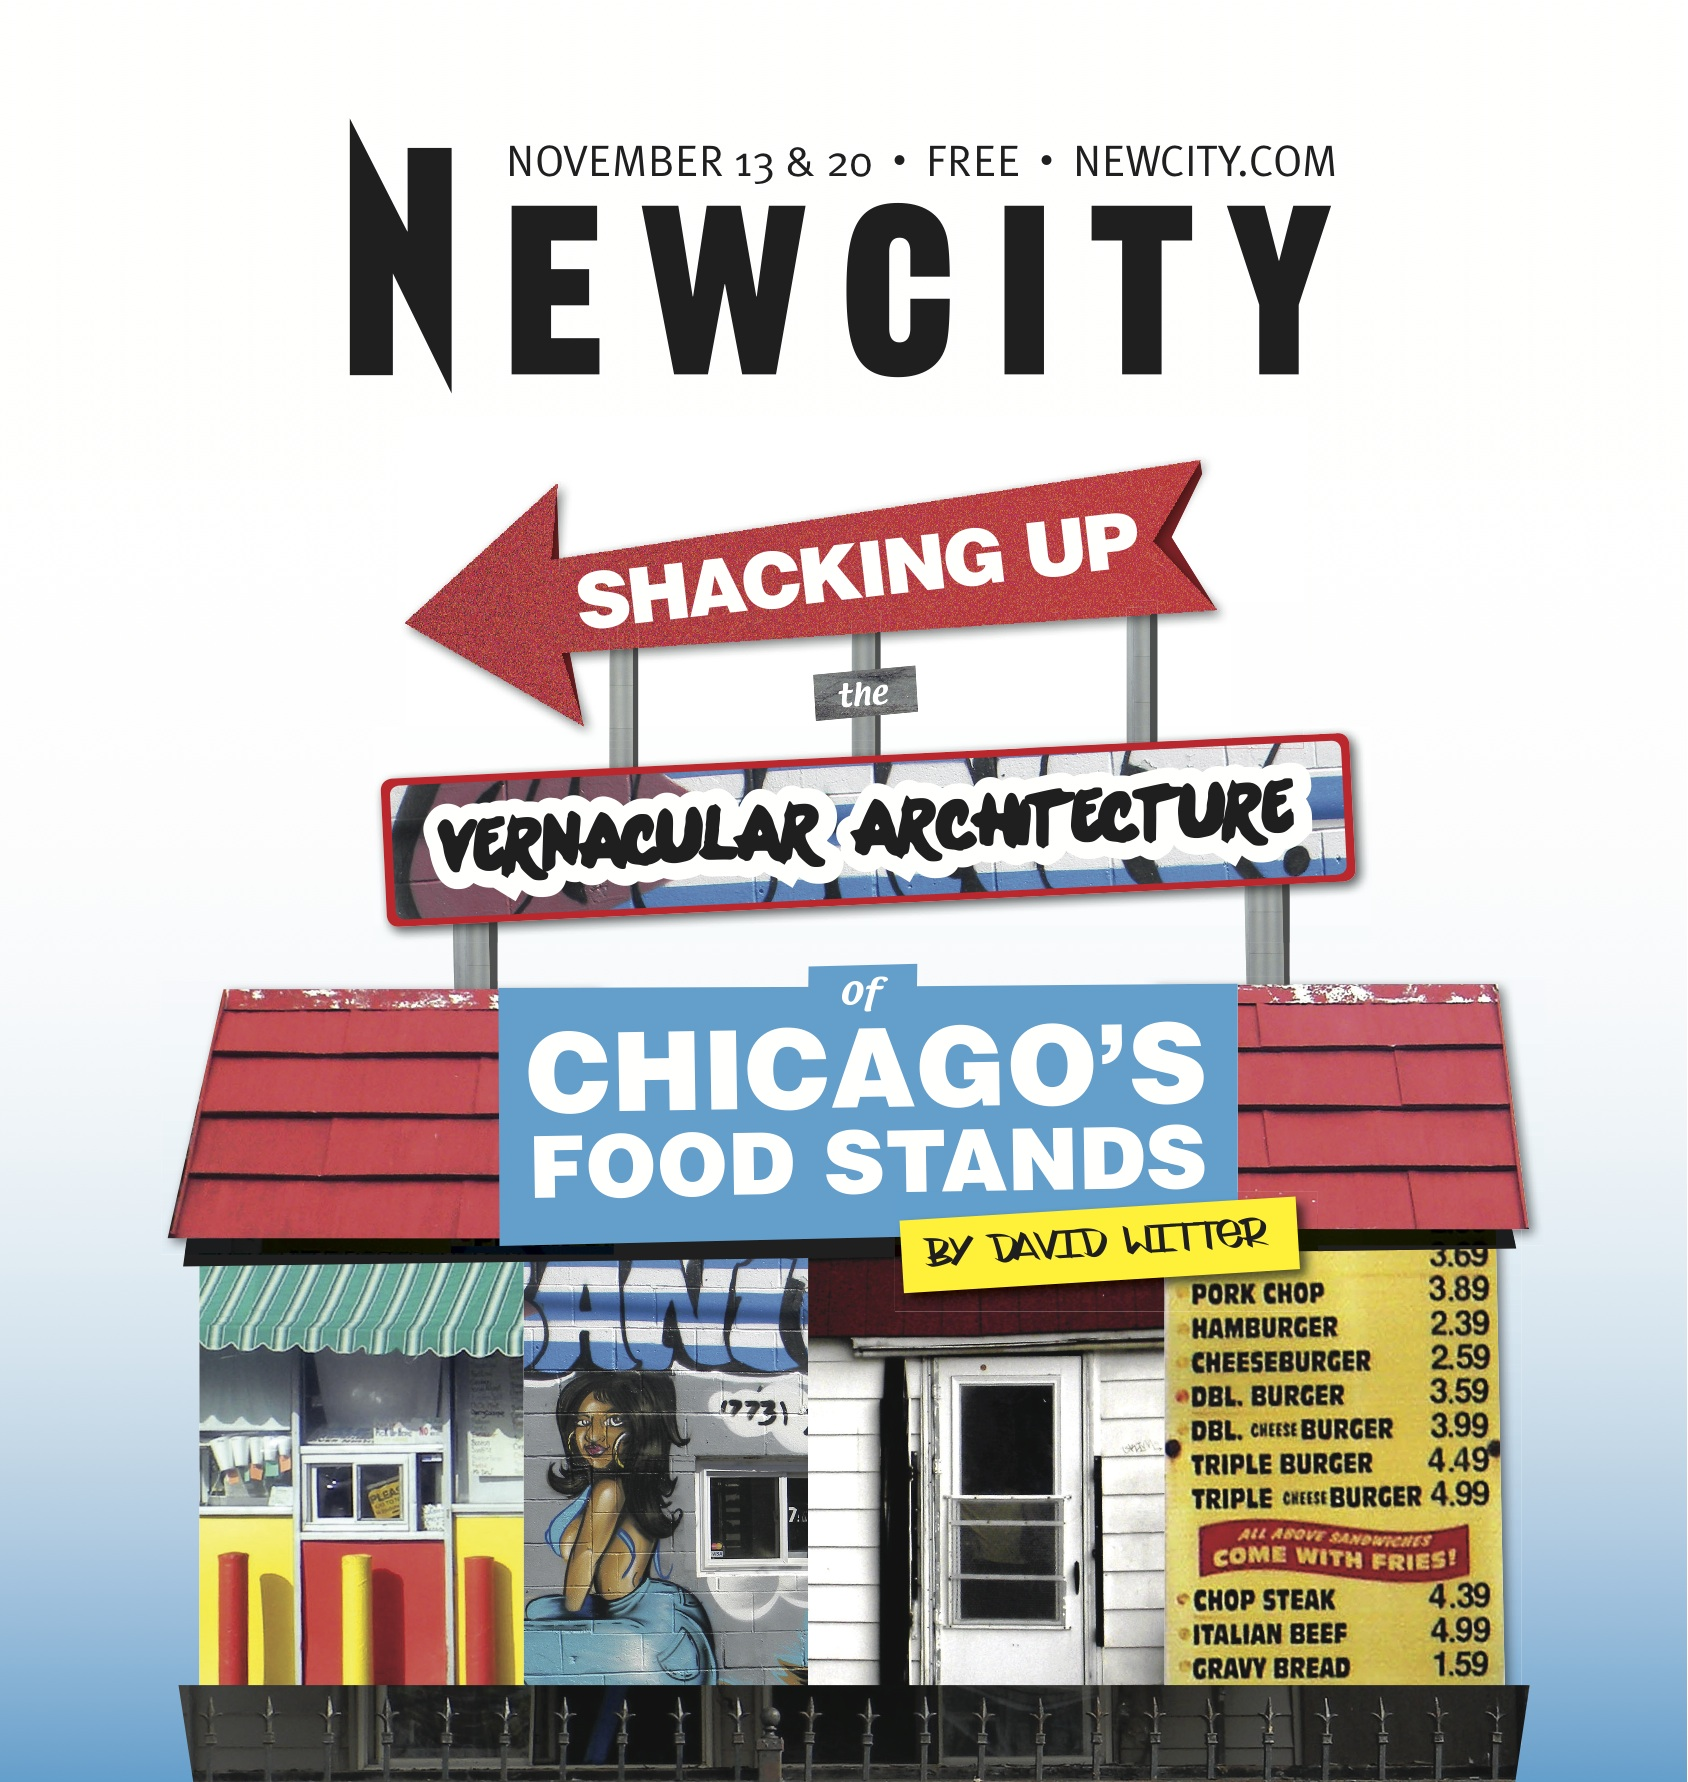 Shacking Up: The Vernacular Architecture of Chicago's Food Stands